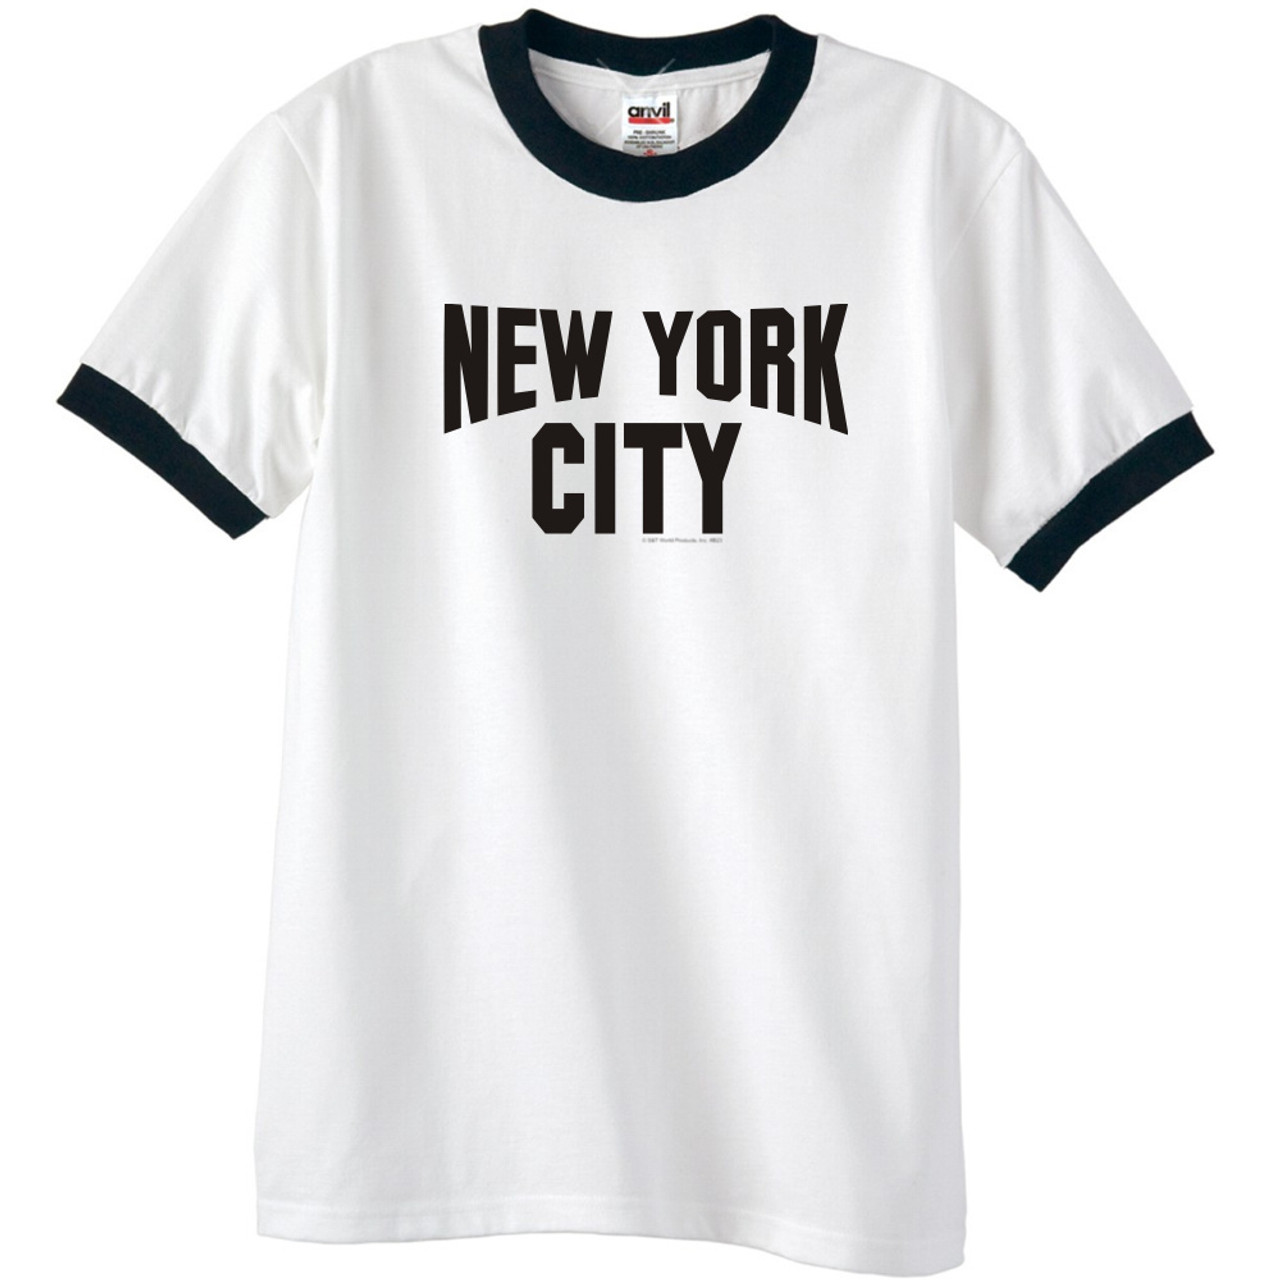 New York City Ringer T Shirt John Lennon